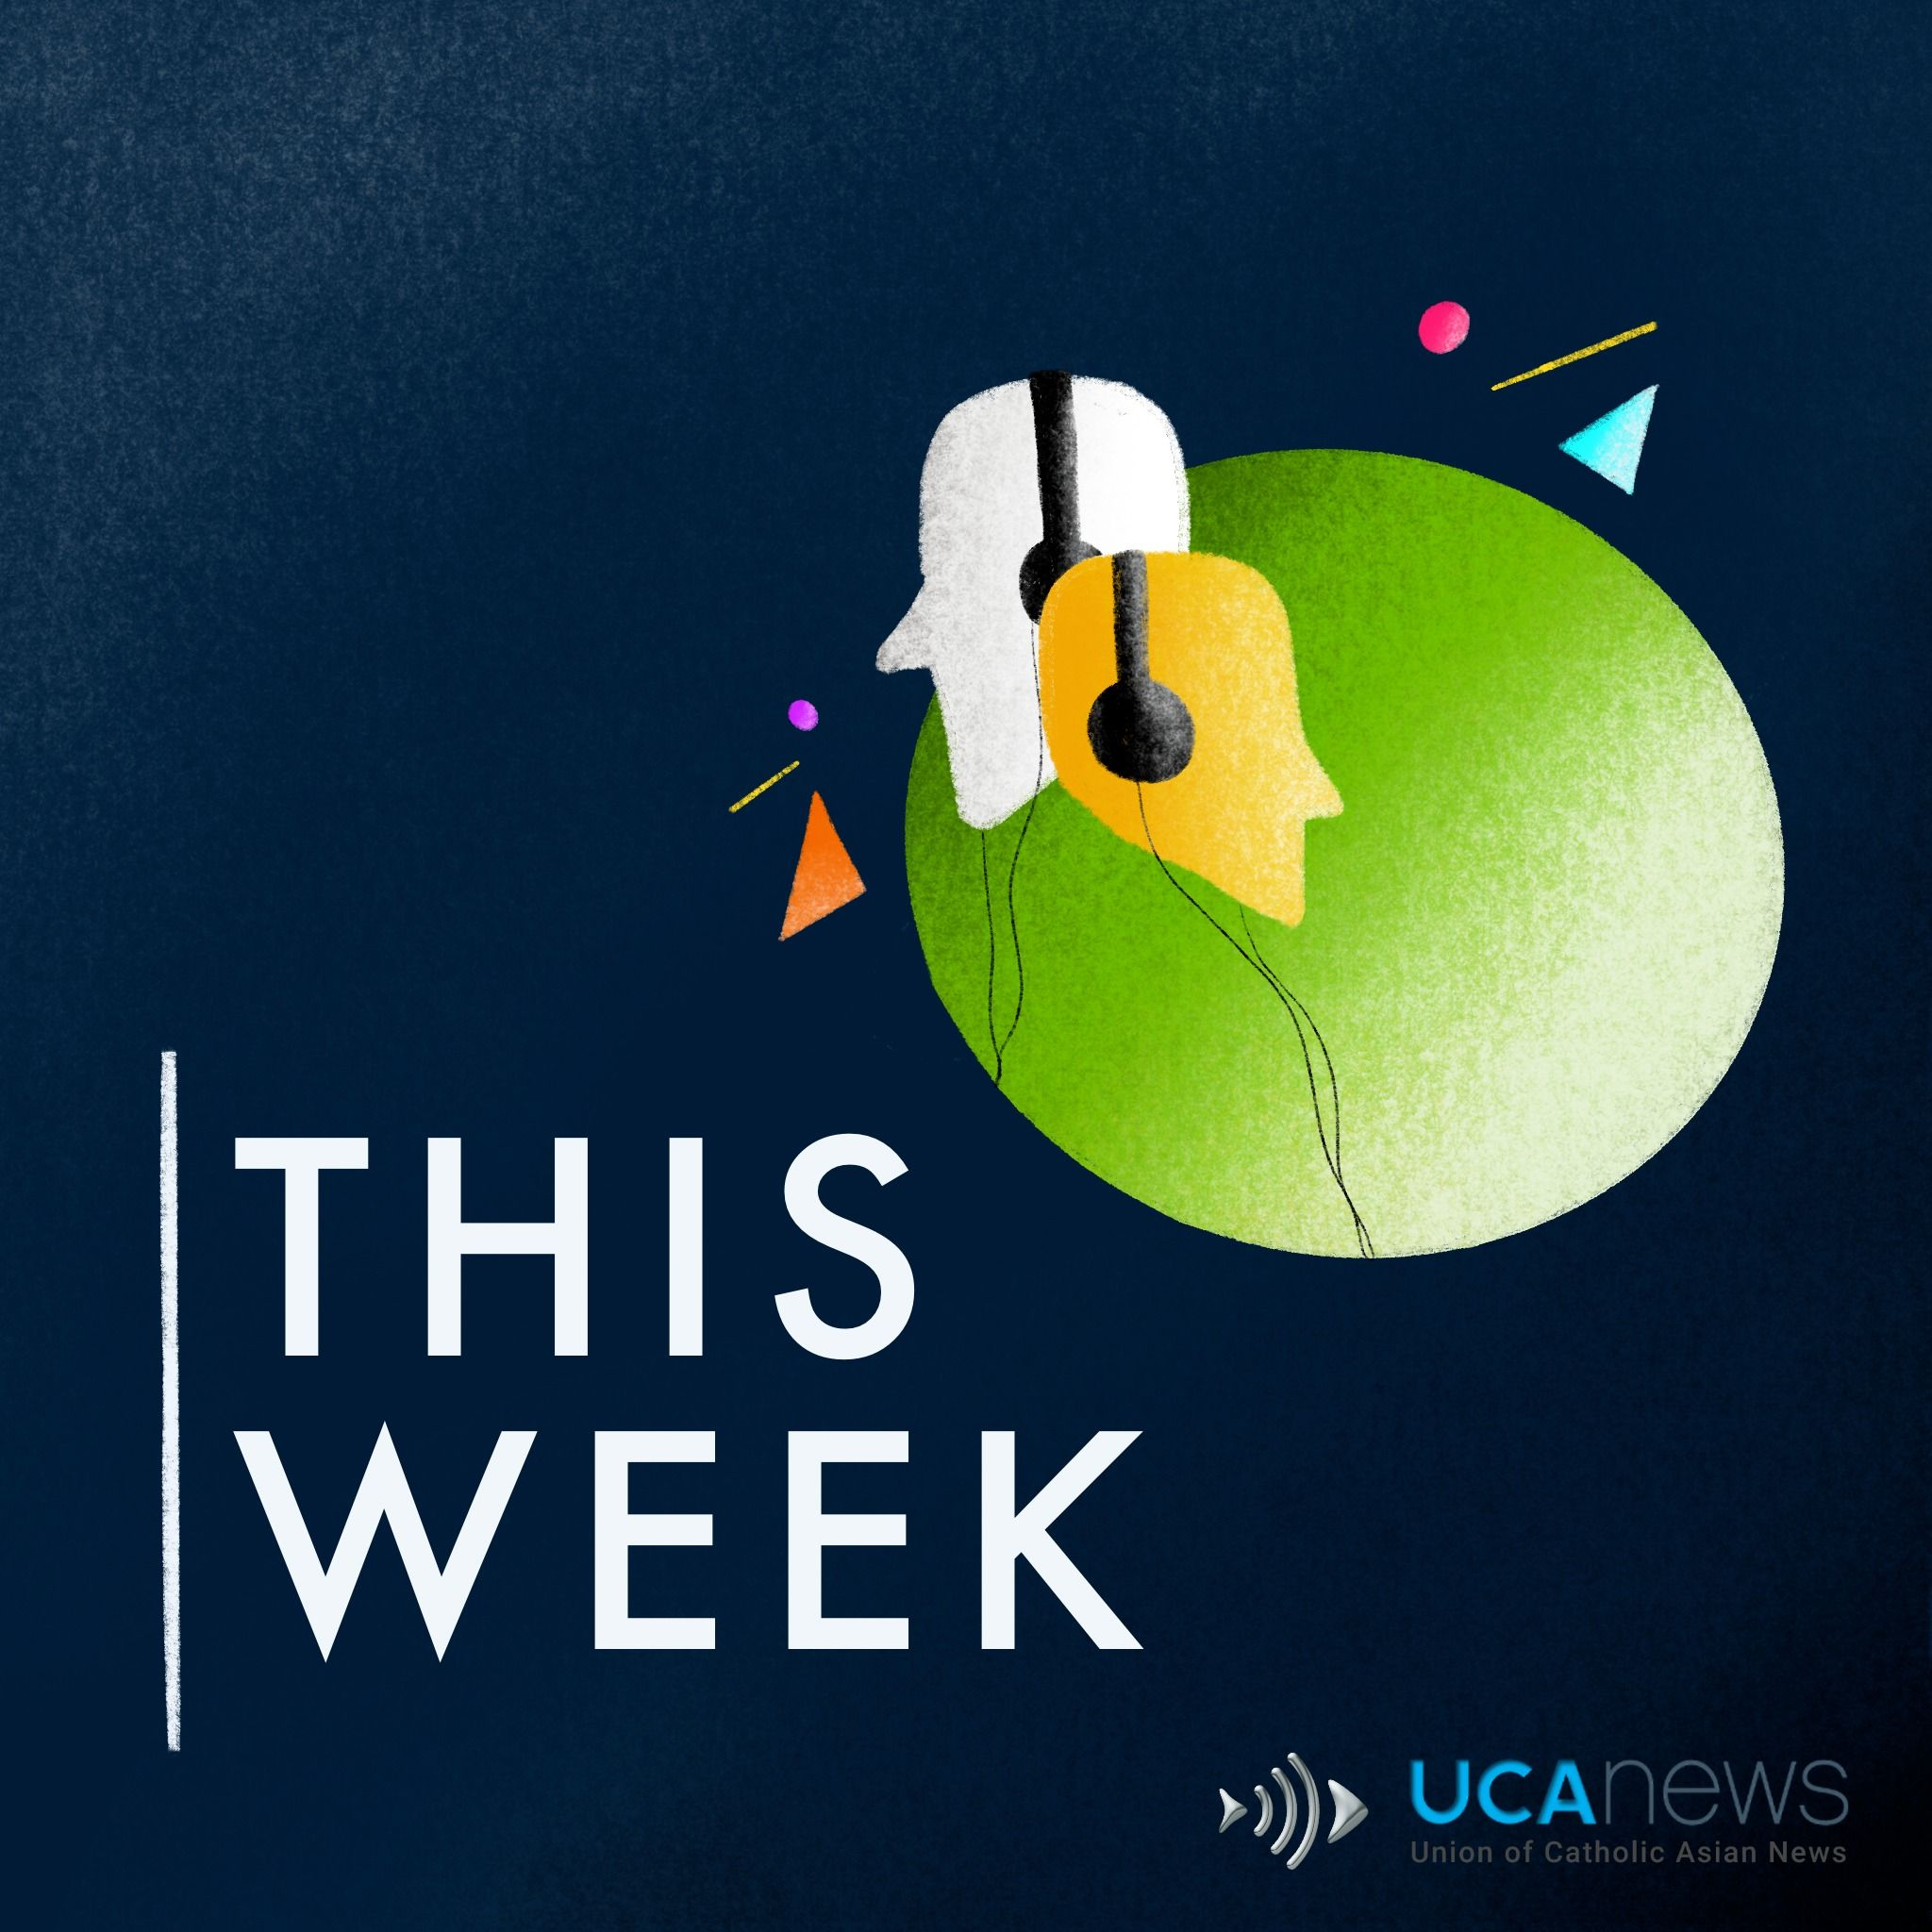 UCA News Weekly Summary, February 19, 2021